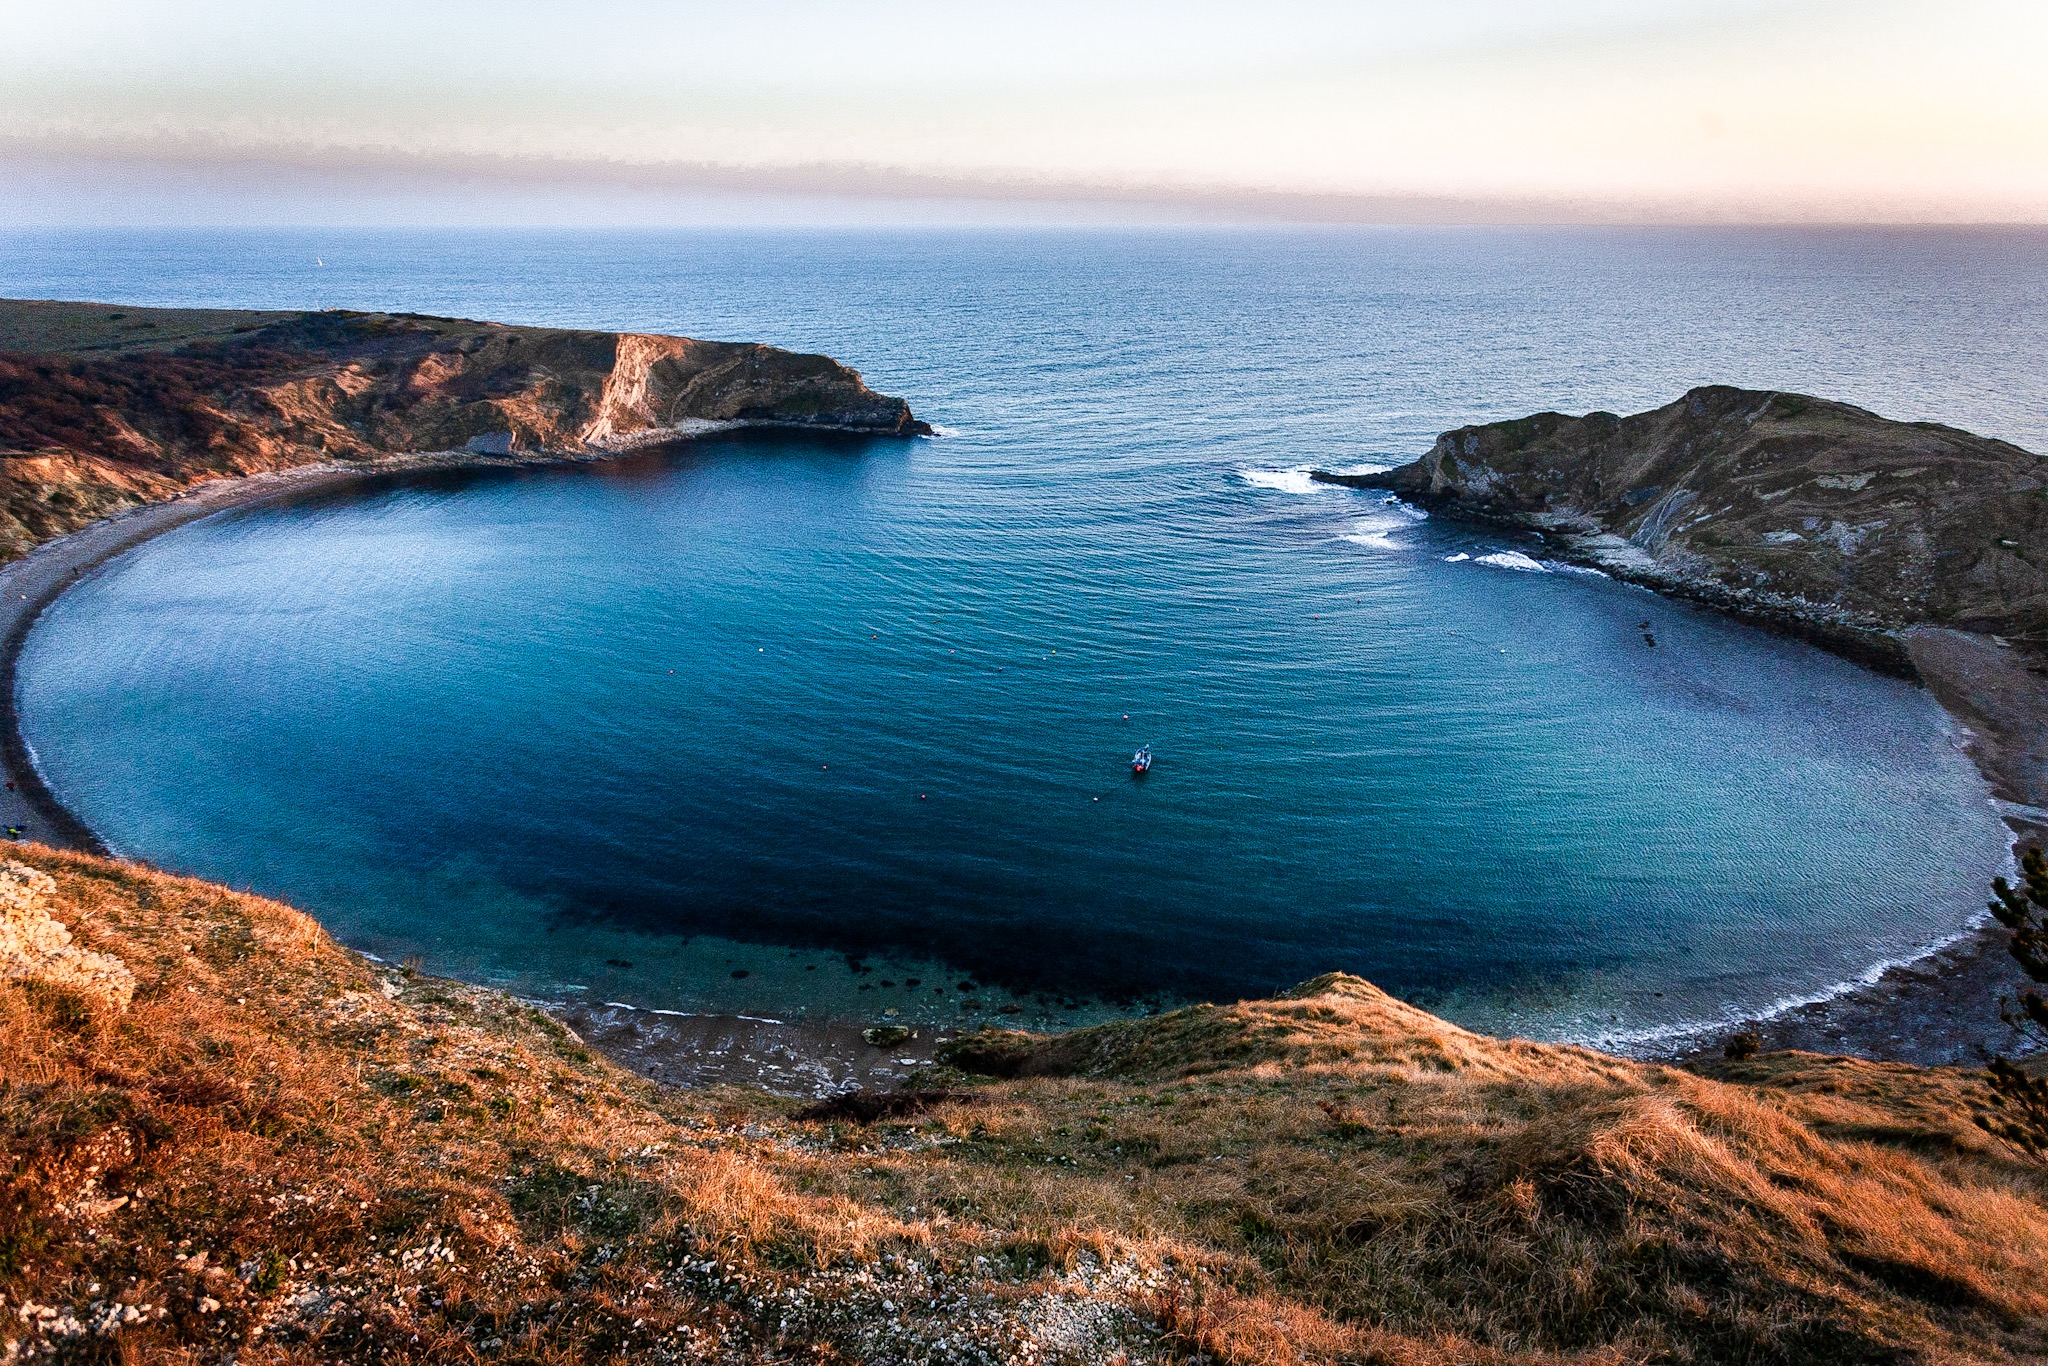 Lulworth Cove by Rick McEvoy Dorset Photographer